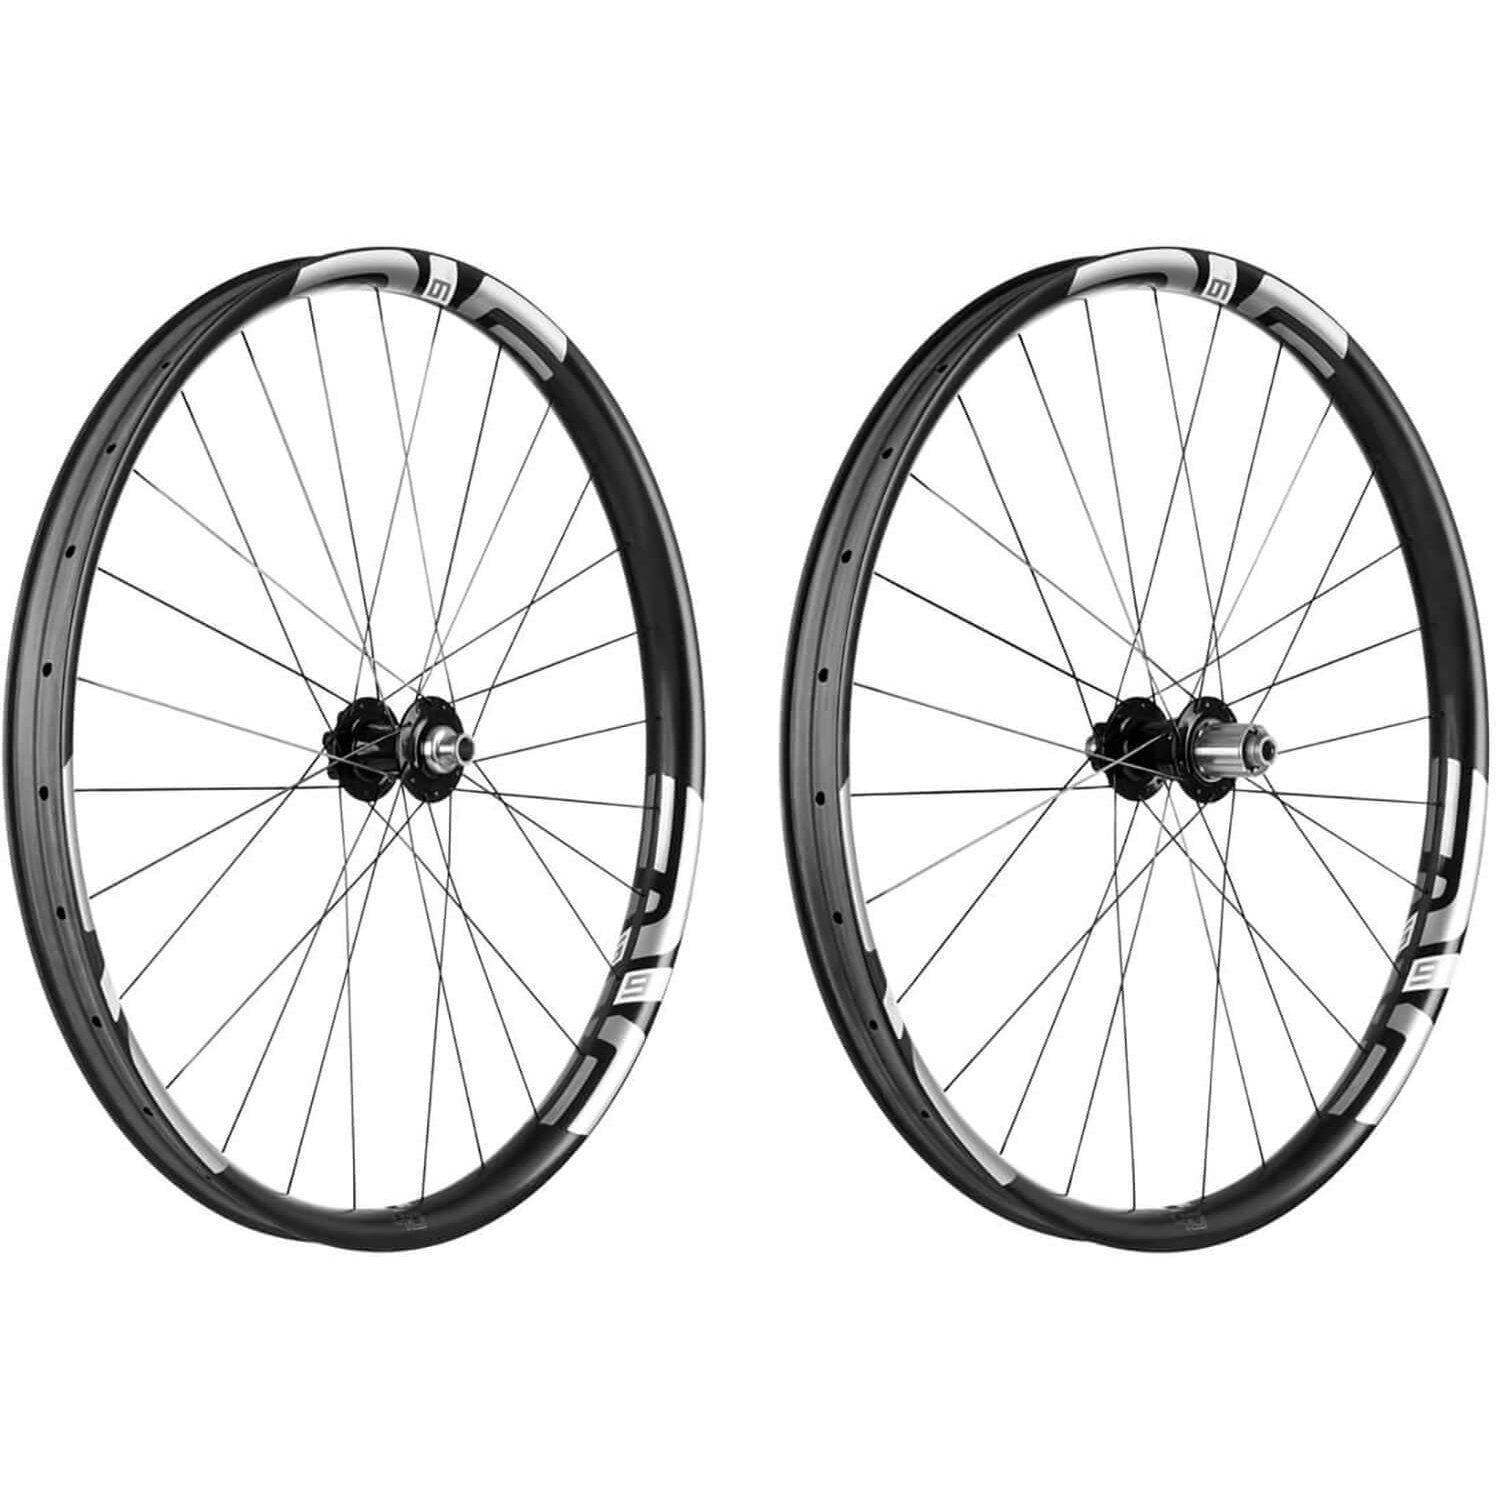 ENVE-ENVE M640 MTB Wheelset – Chris King Hubs-Black – Shimano-27.5-EN1327CK1002111015-saddleback-elite-performance-cycling